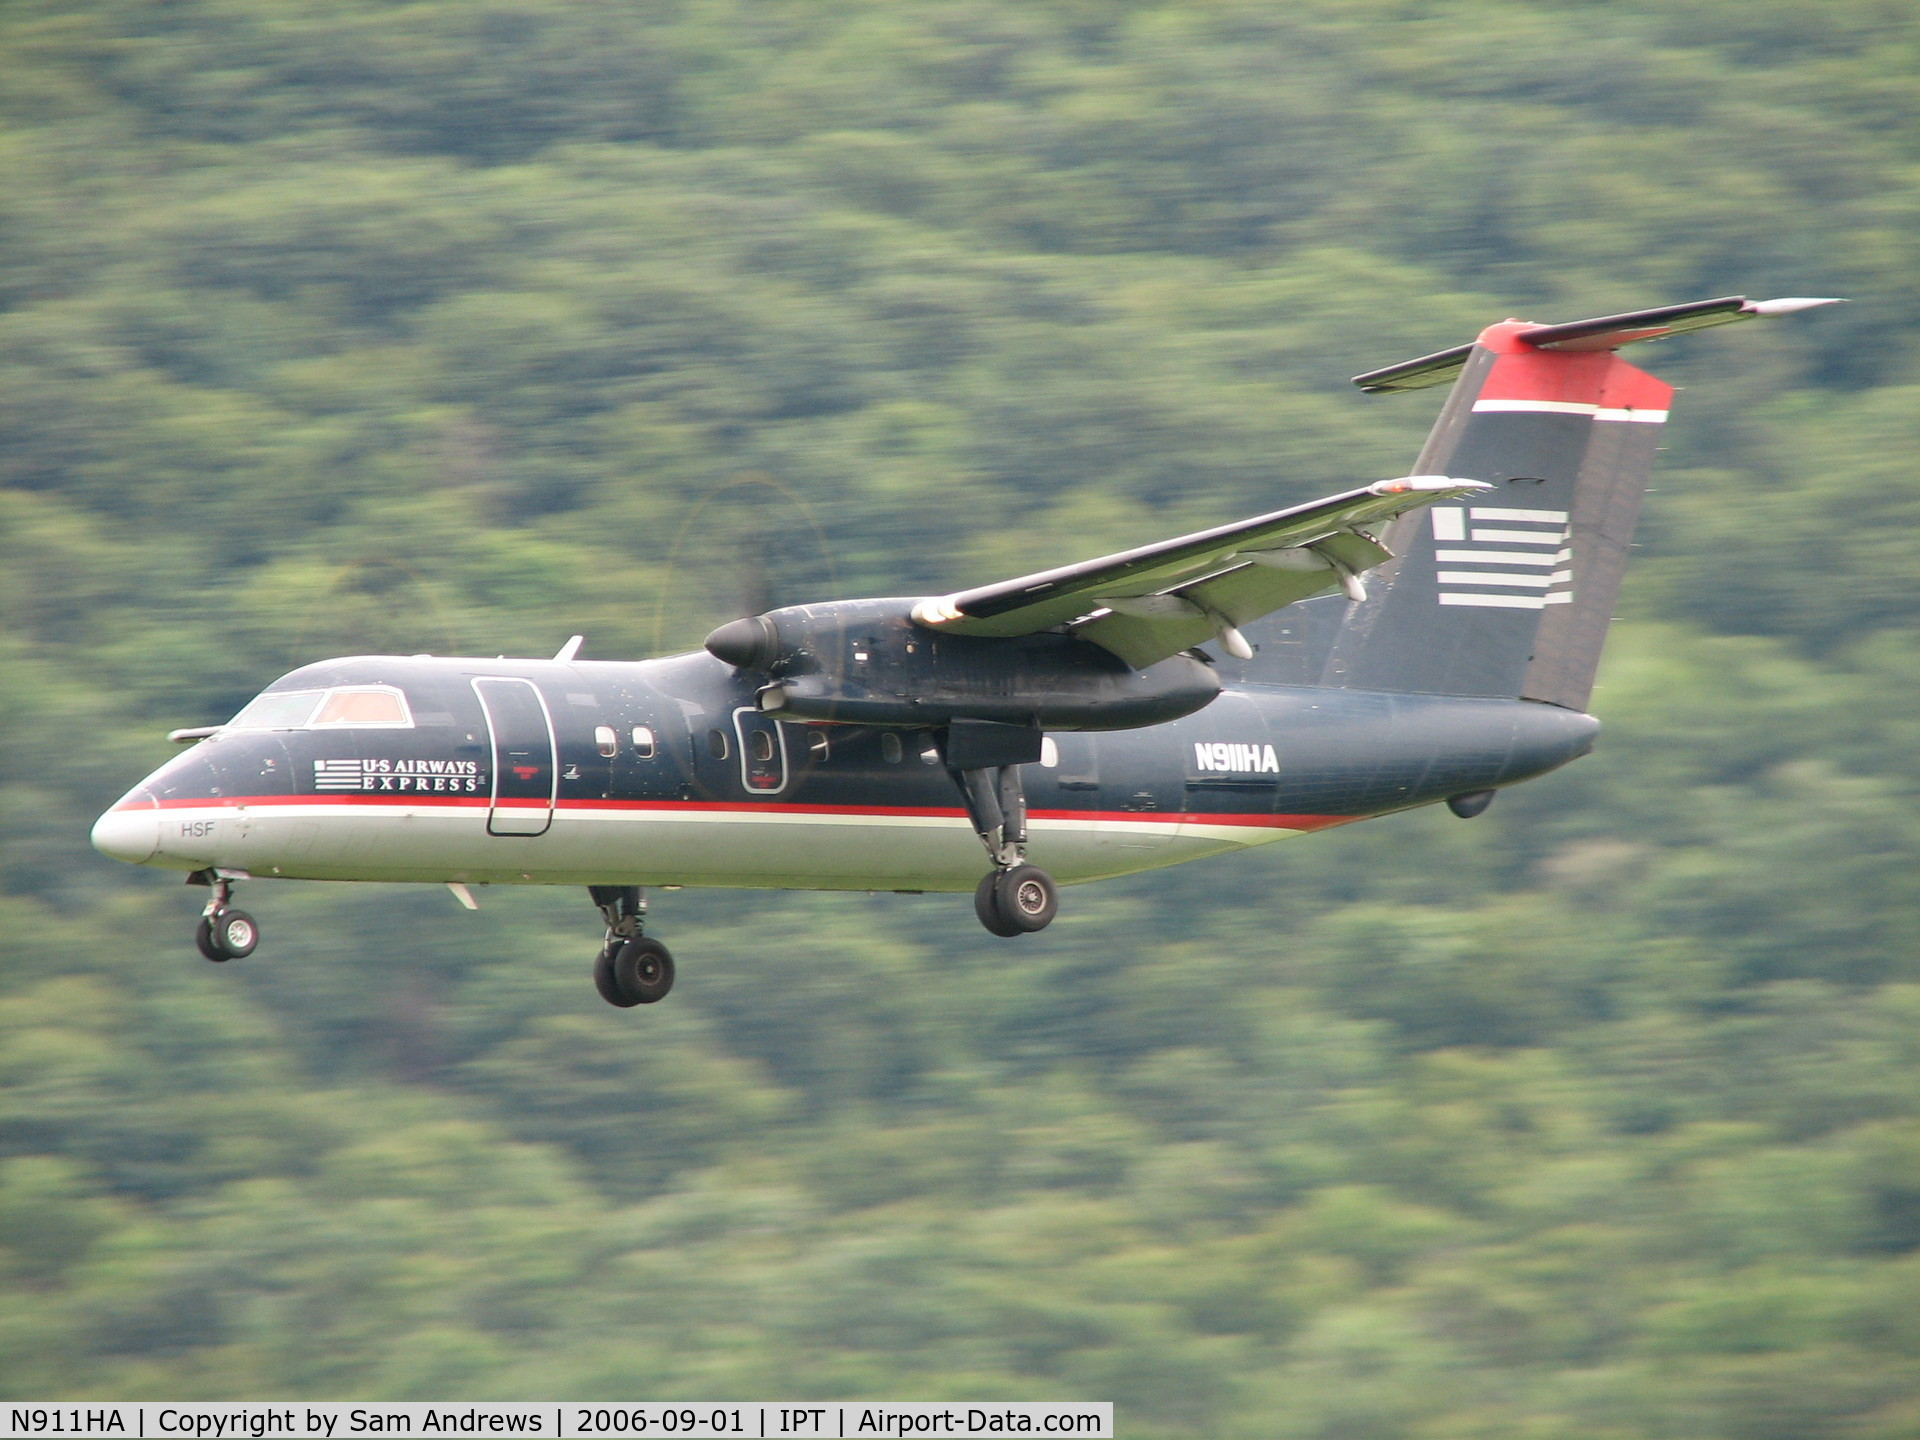 N911HA, De Havilland Canada DHC-8-102 Dash 8 C/N 034, Short finall for a really sweet landing.